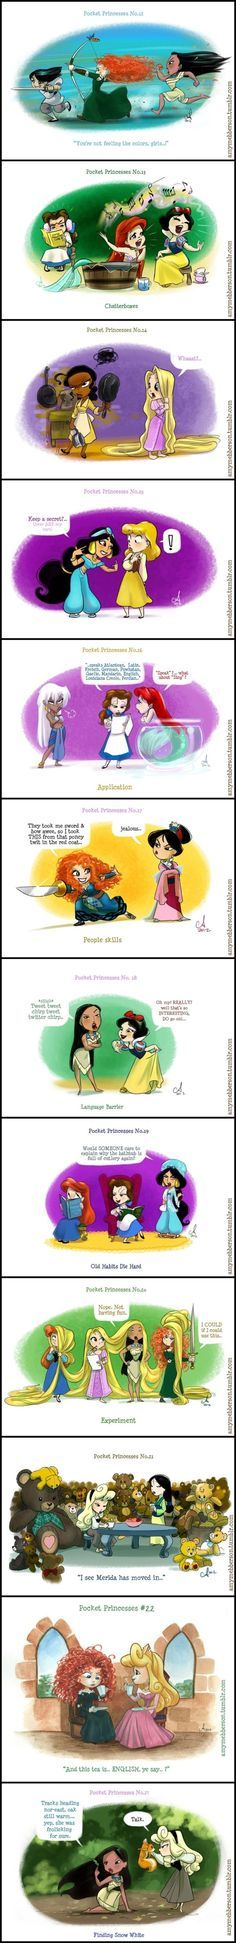 Pocket Princesses (Part 2) by Amy Mebberson by susangir